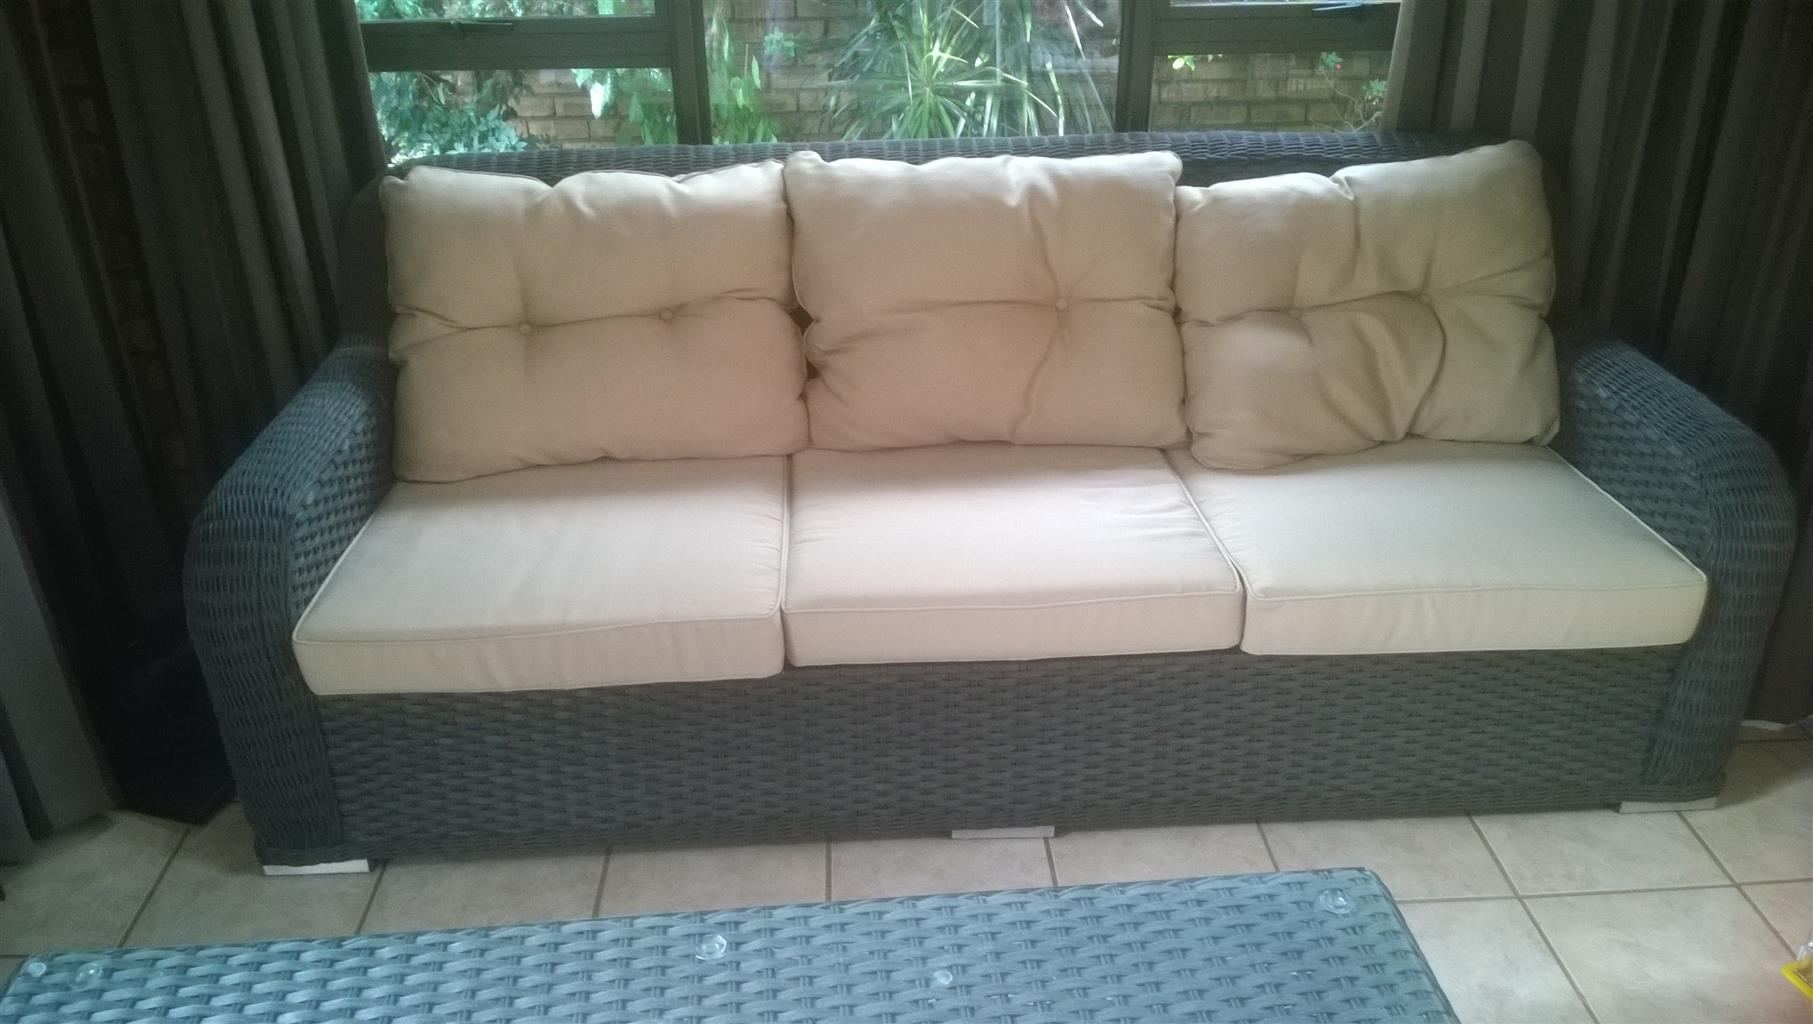 3 SEAT RATTEN SOFA WITH CUSHIONS AND COFFEE TABLE FOR SALE